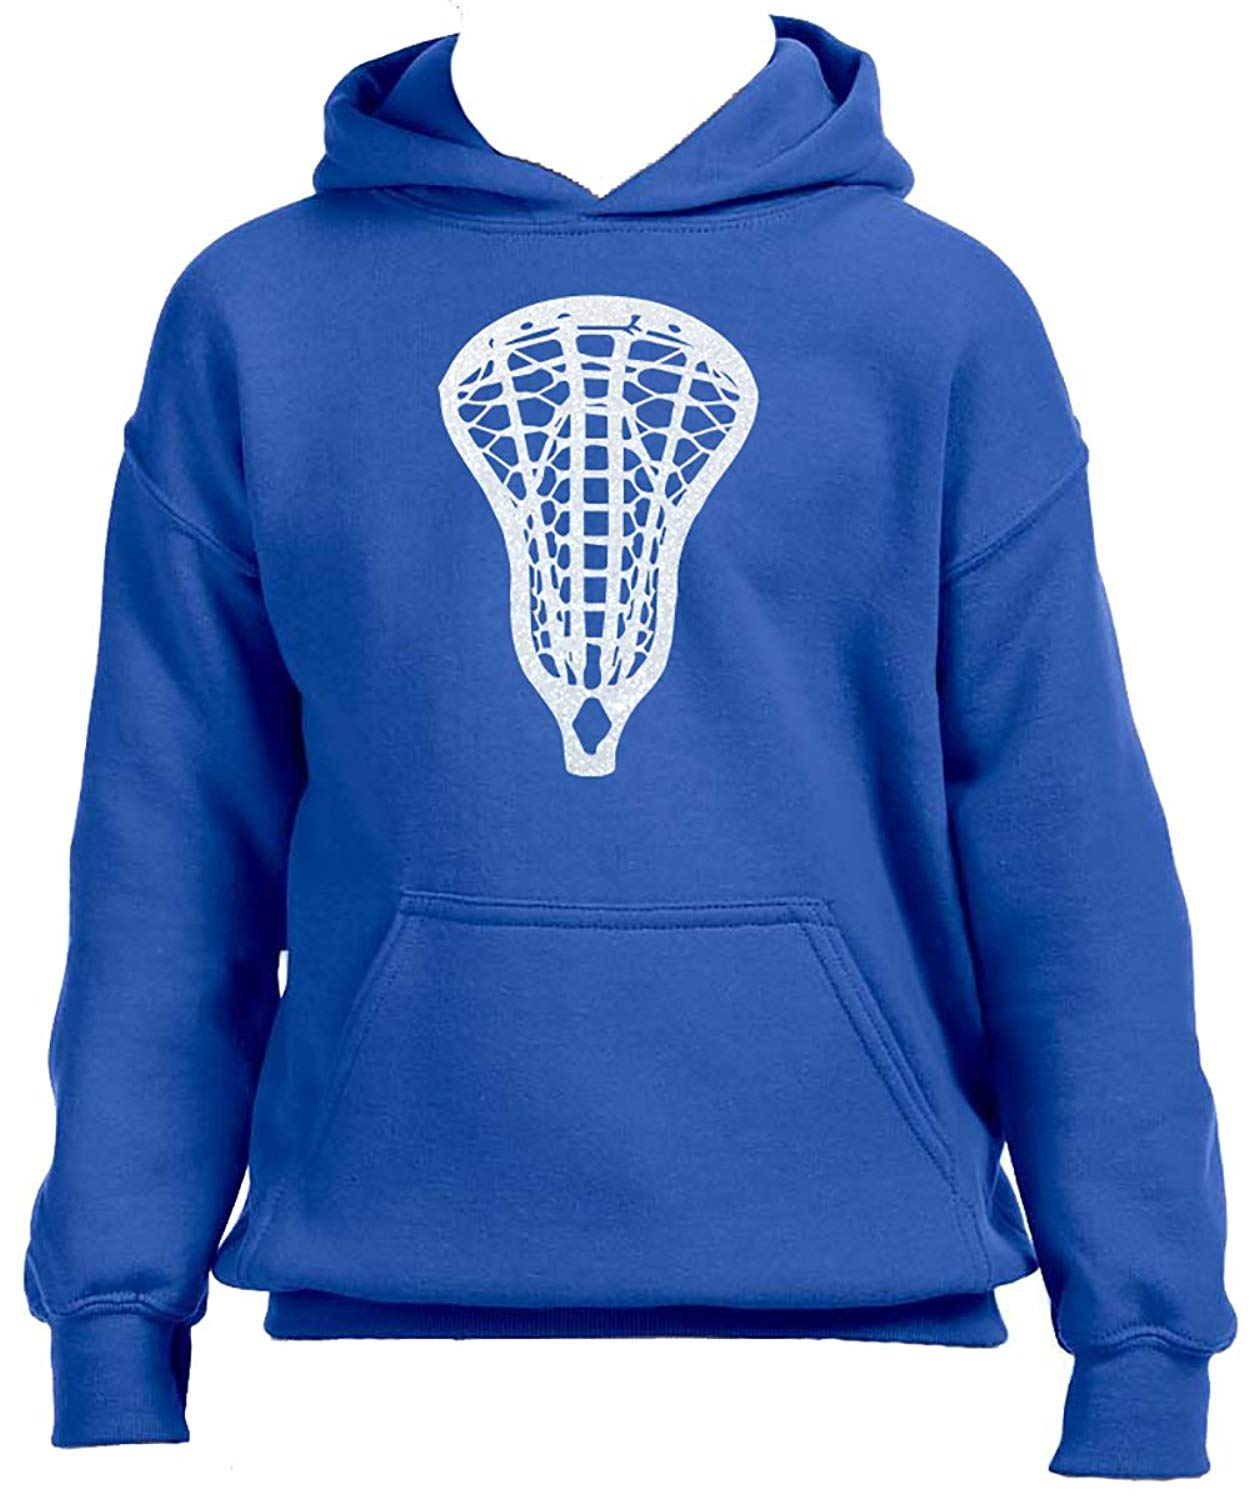 Get Quotations · LAX SO HARD Girls Lacrosse Hoodie 759205100